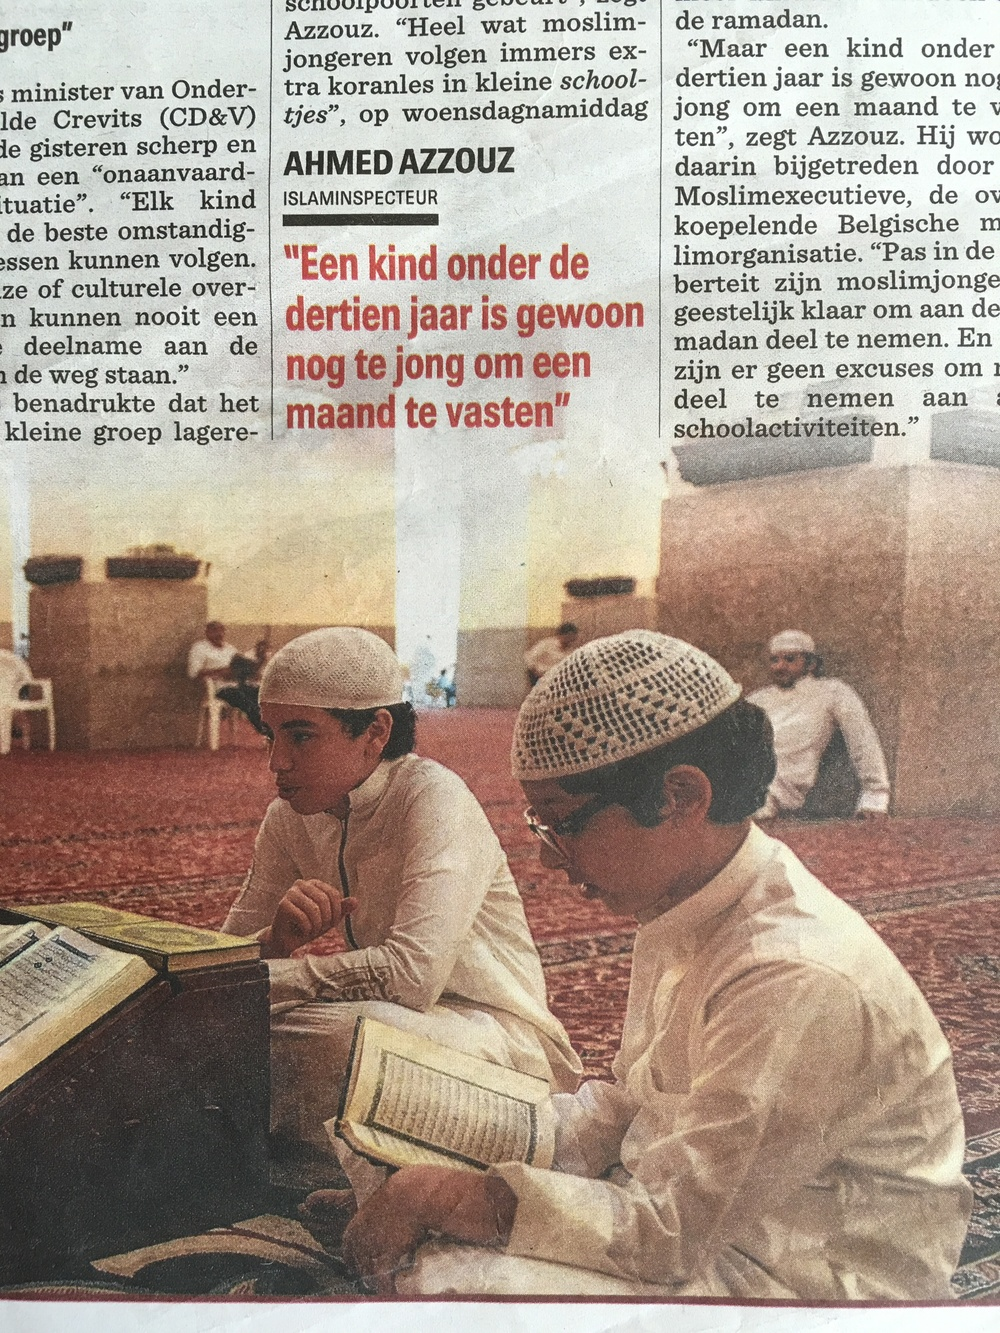 The article on the practice of Ramadan in Belgium